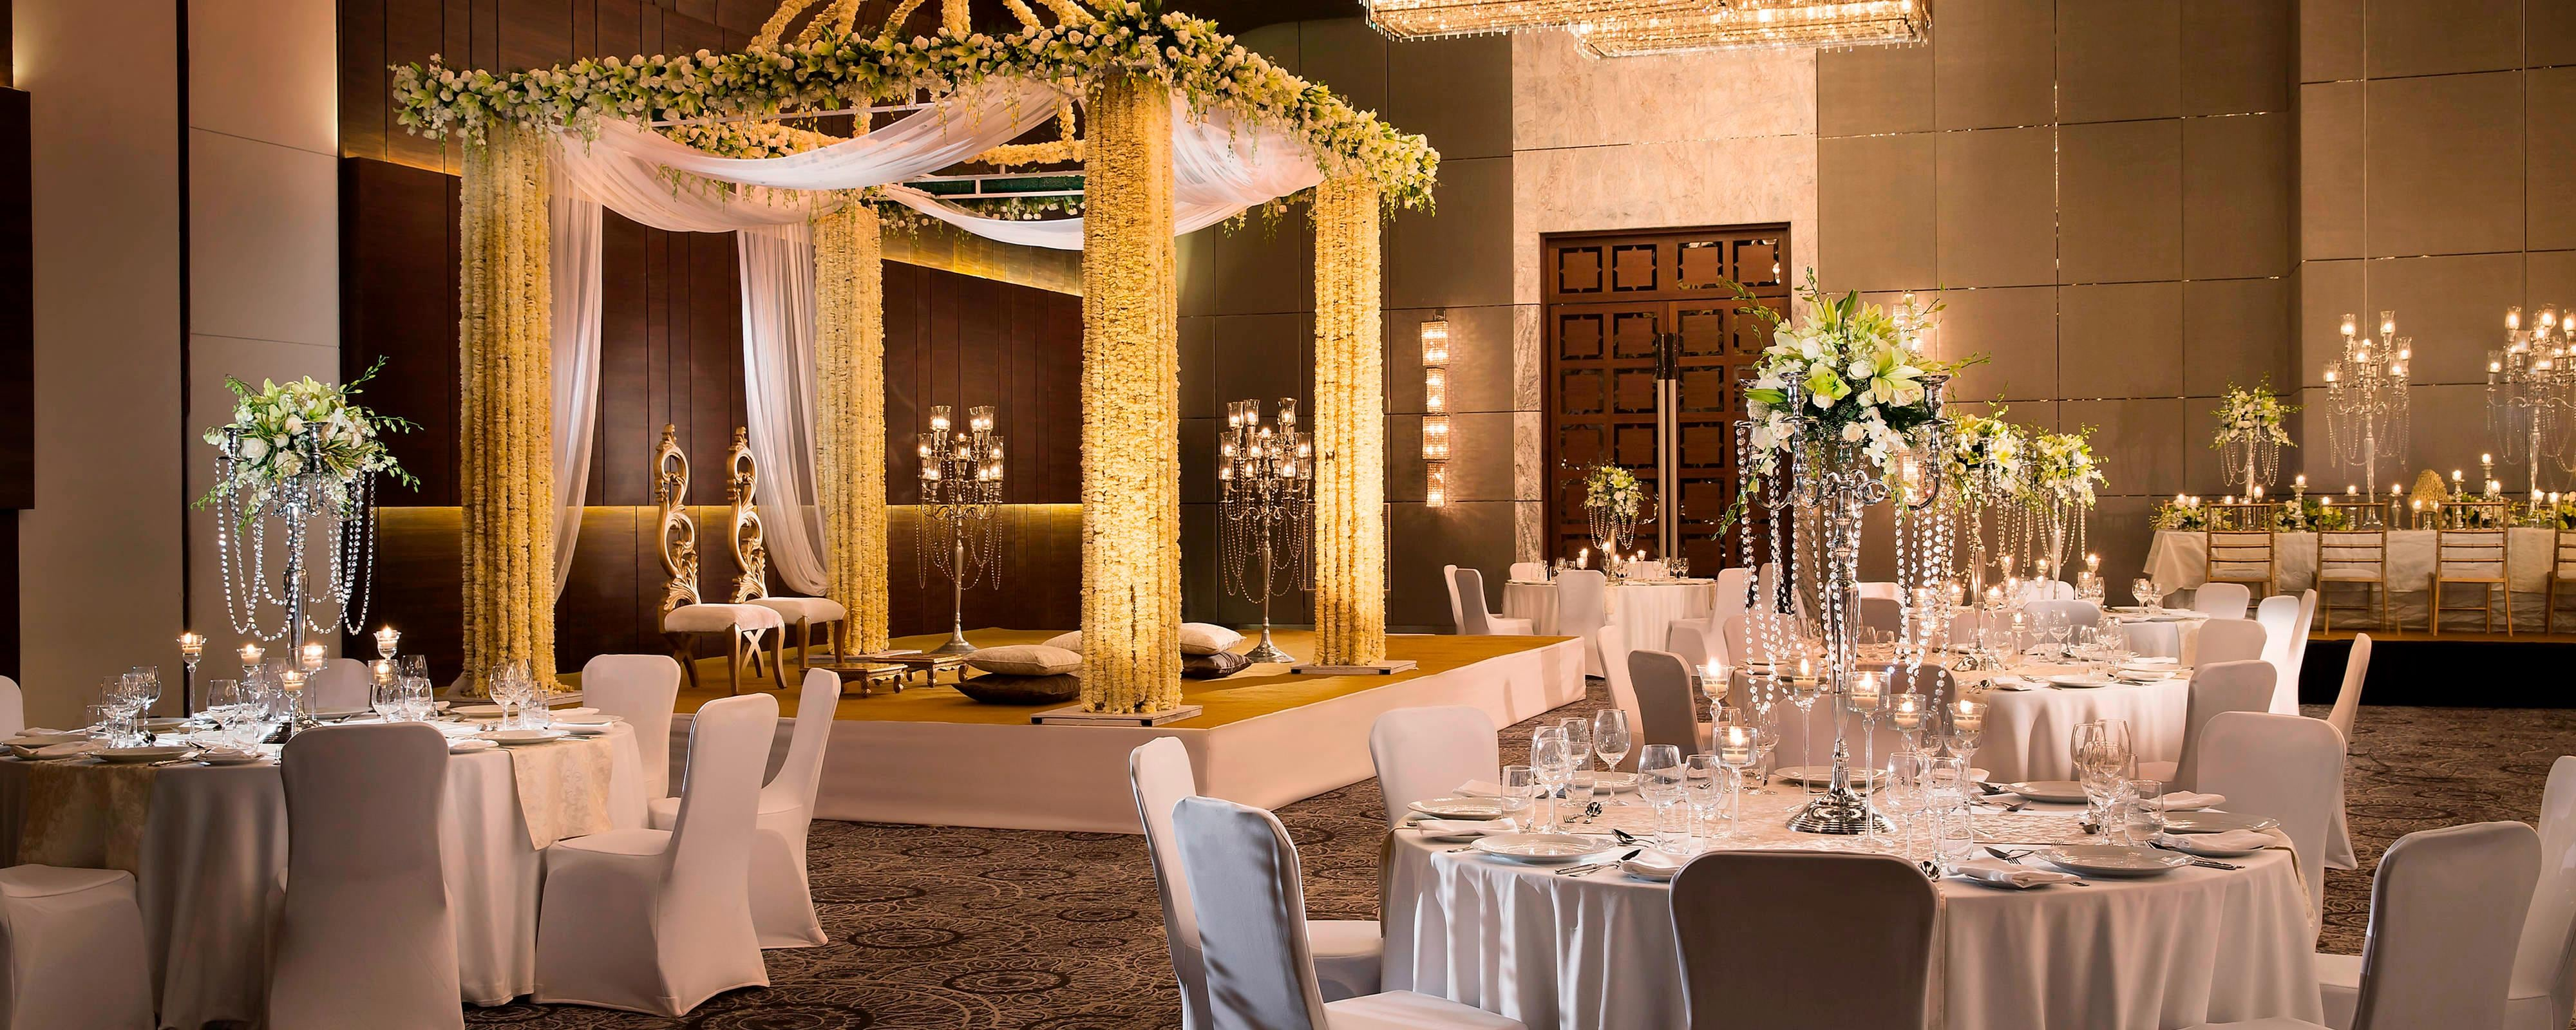 Wedding Halls In New Delhi India Jw Marriott Hotel New